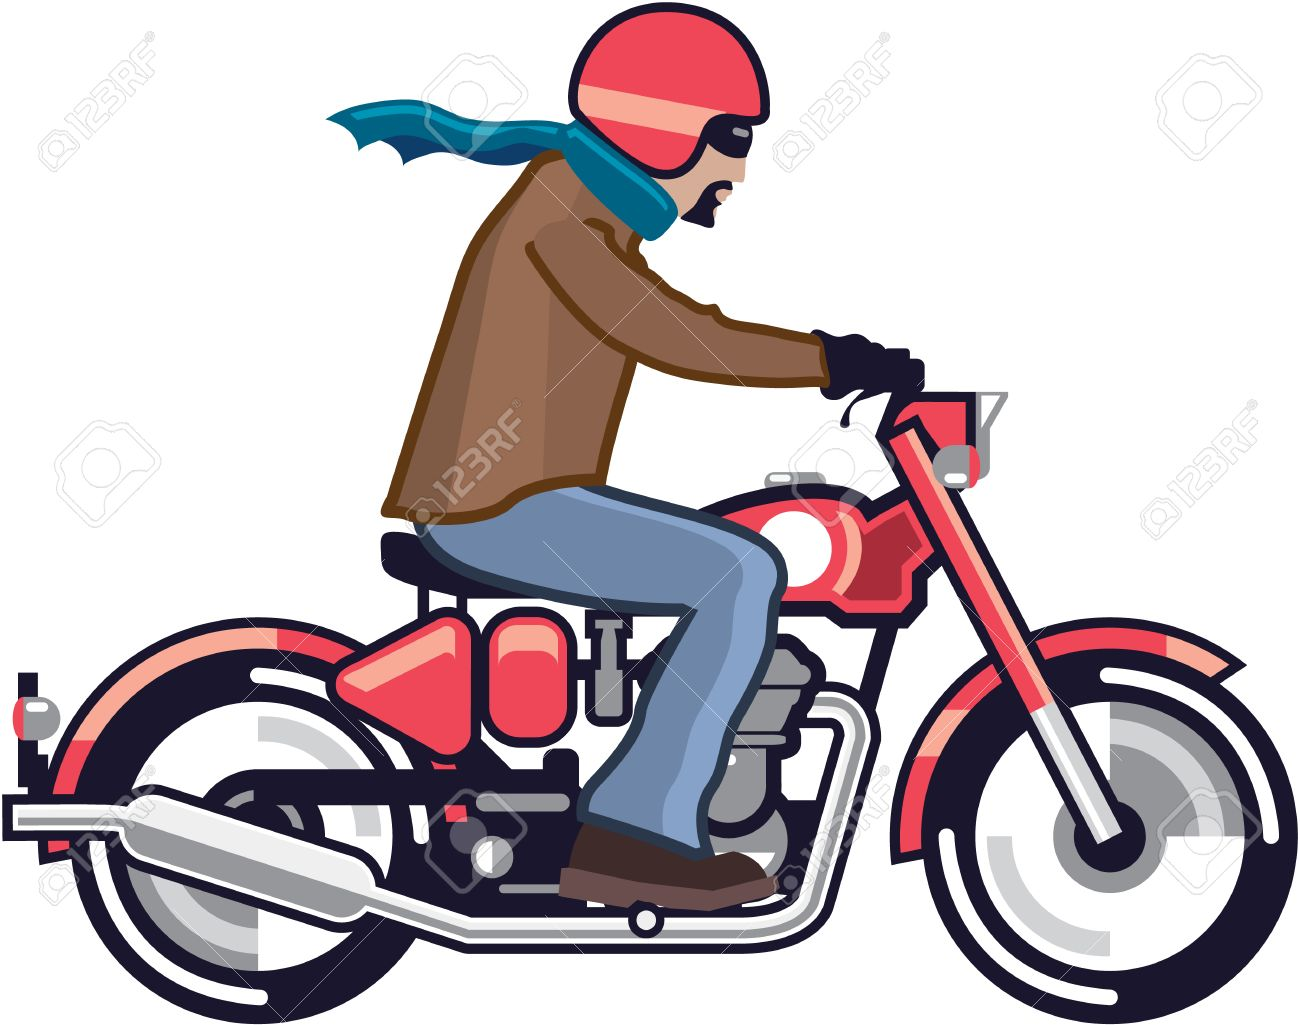 dude on the vintage motorcycle vector illustration clip art royalty rh 123rf com clip art motorcycles free clip art motorcycles black and white